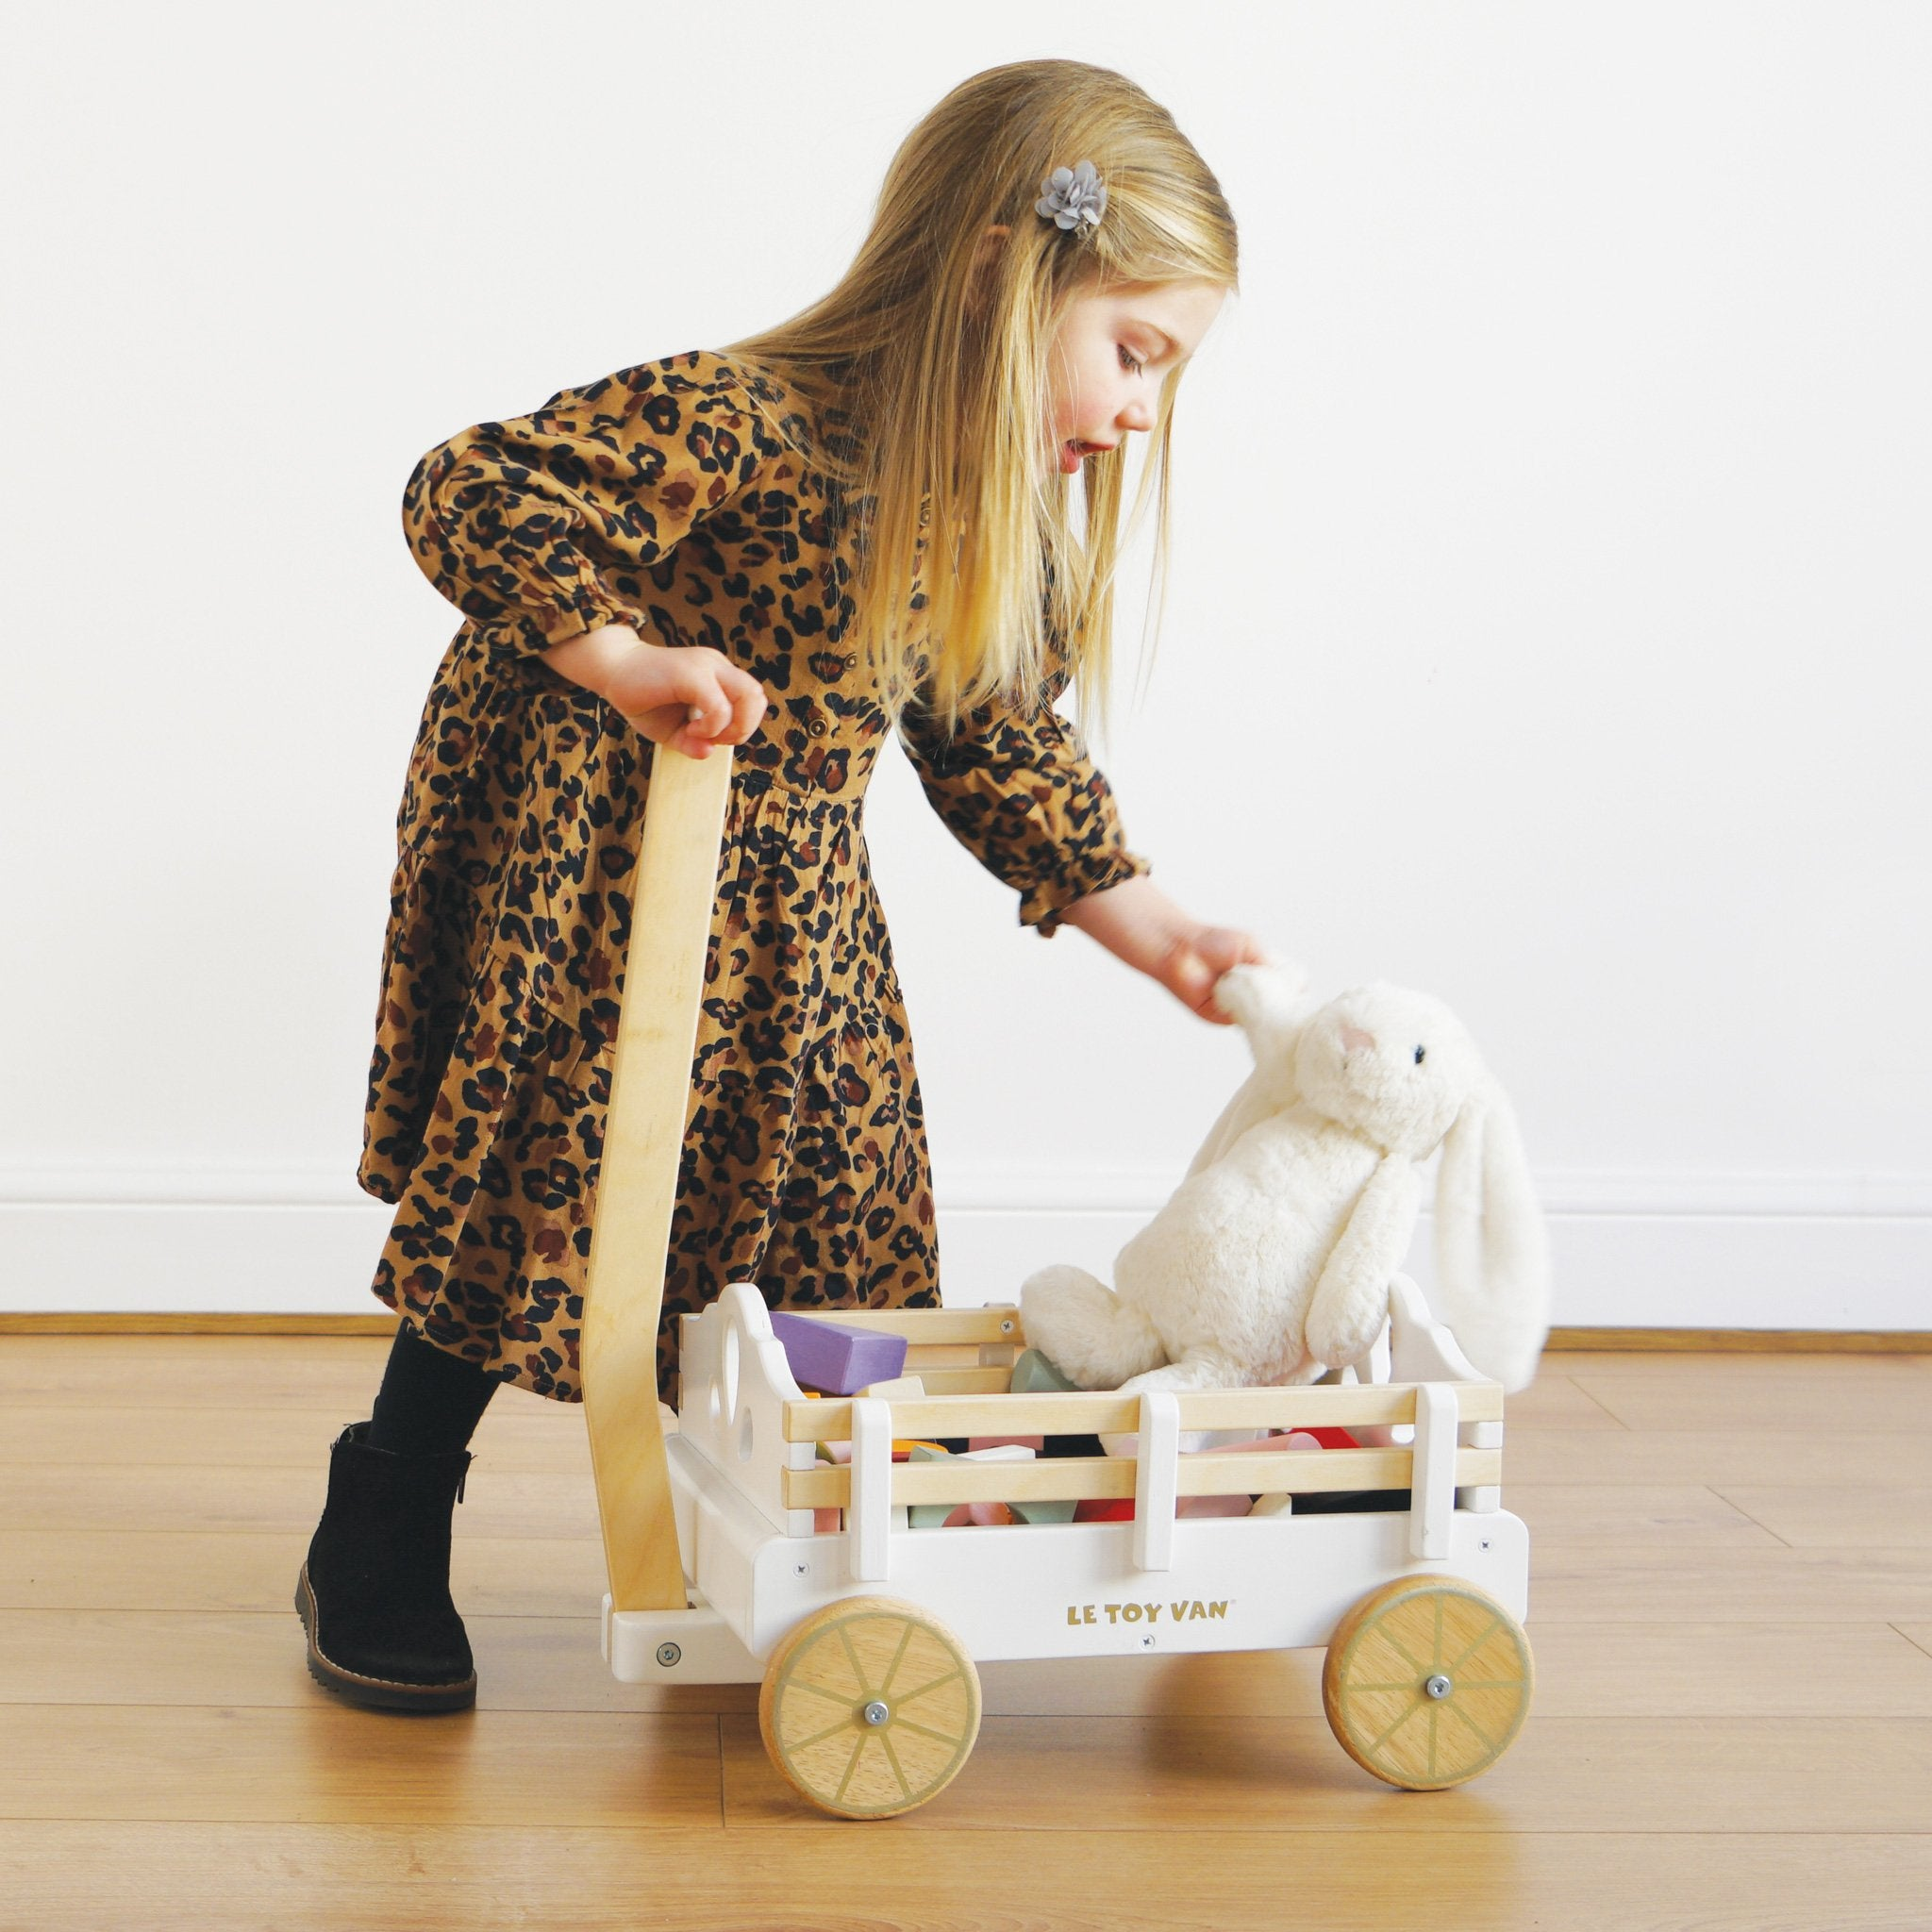 Le Toy Van Honeybake Pull Along Wagon Le Toy Van Baby Walkers and Entertainers at Little Earth Nest Eco Shop